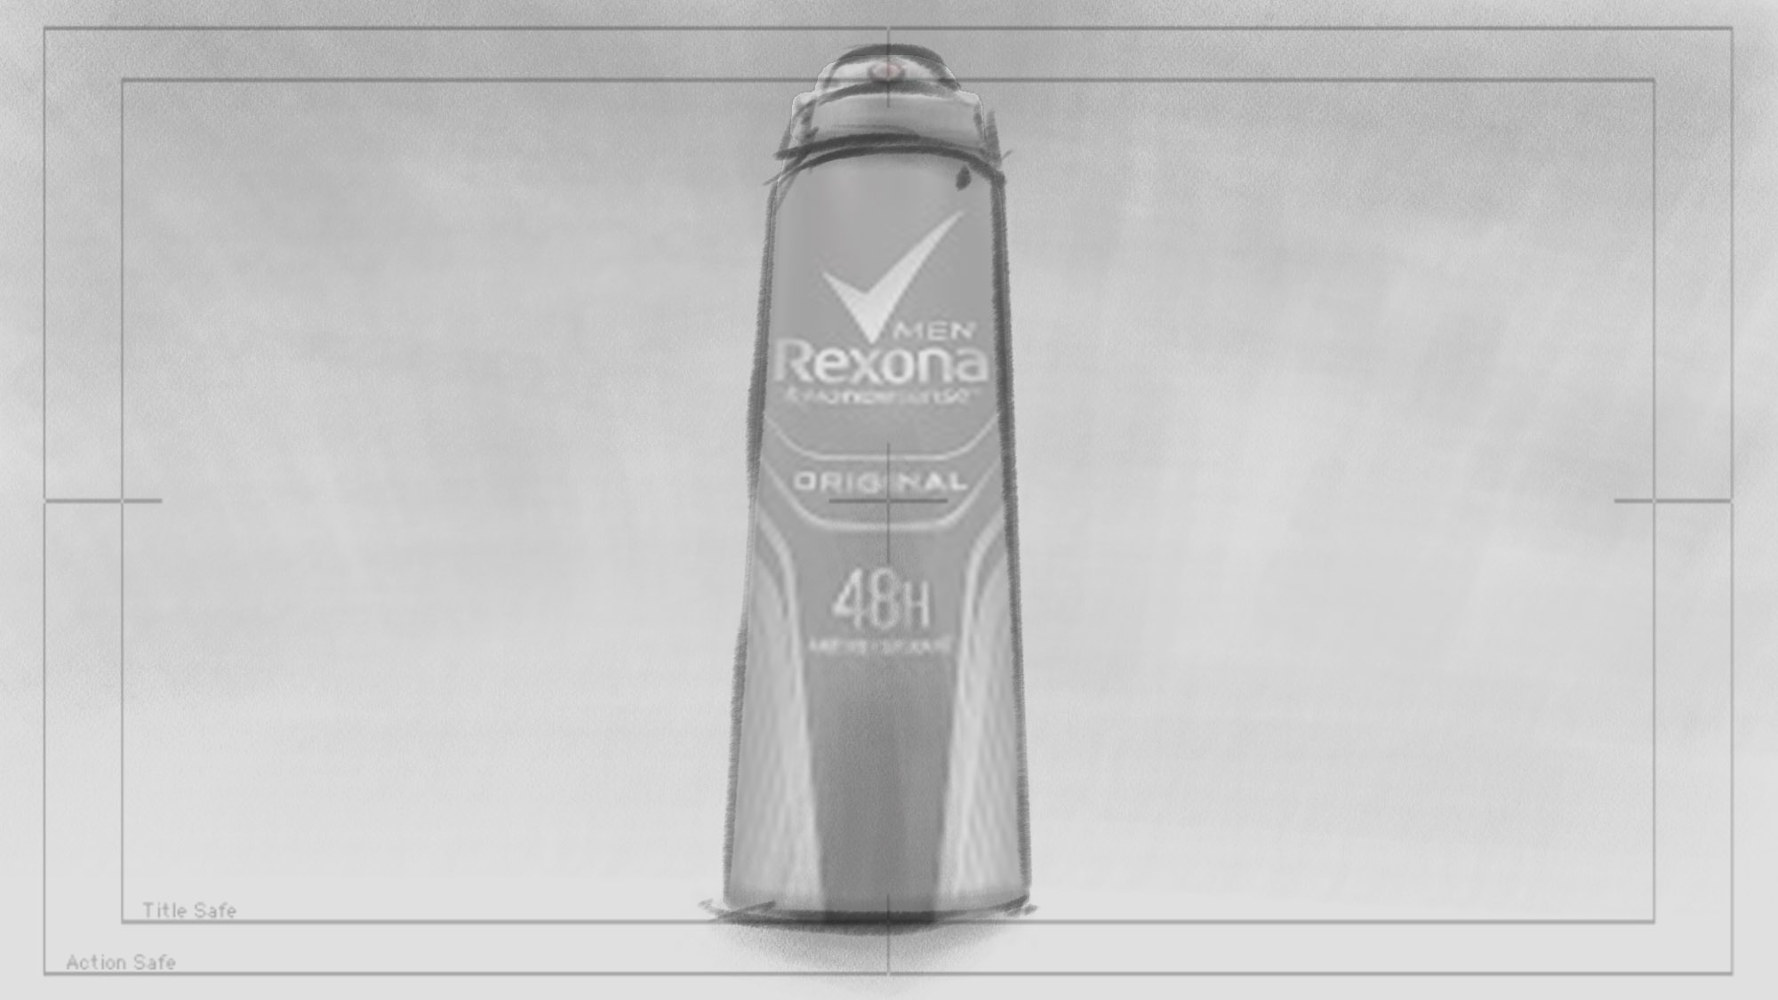 MM_Rexona_All_Blacks_TVC01_Frame_H03_001 by Hendrik Gericke